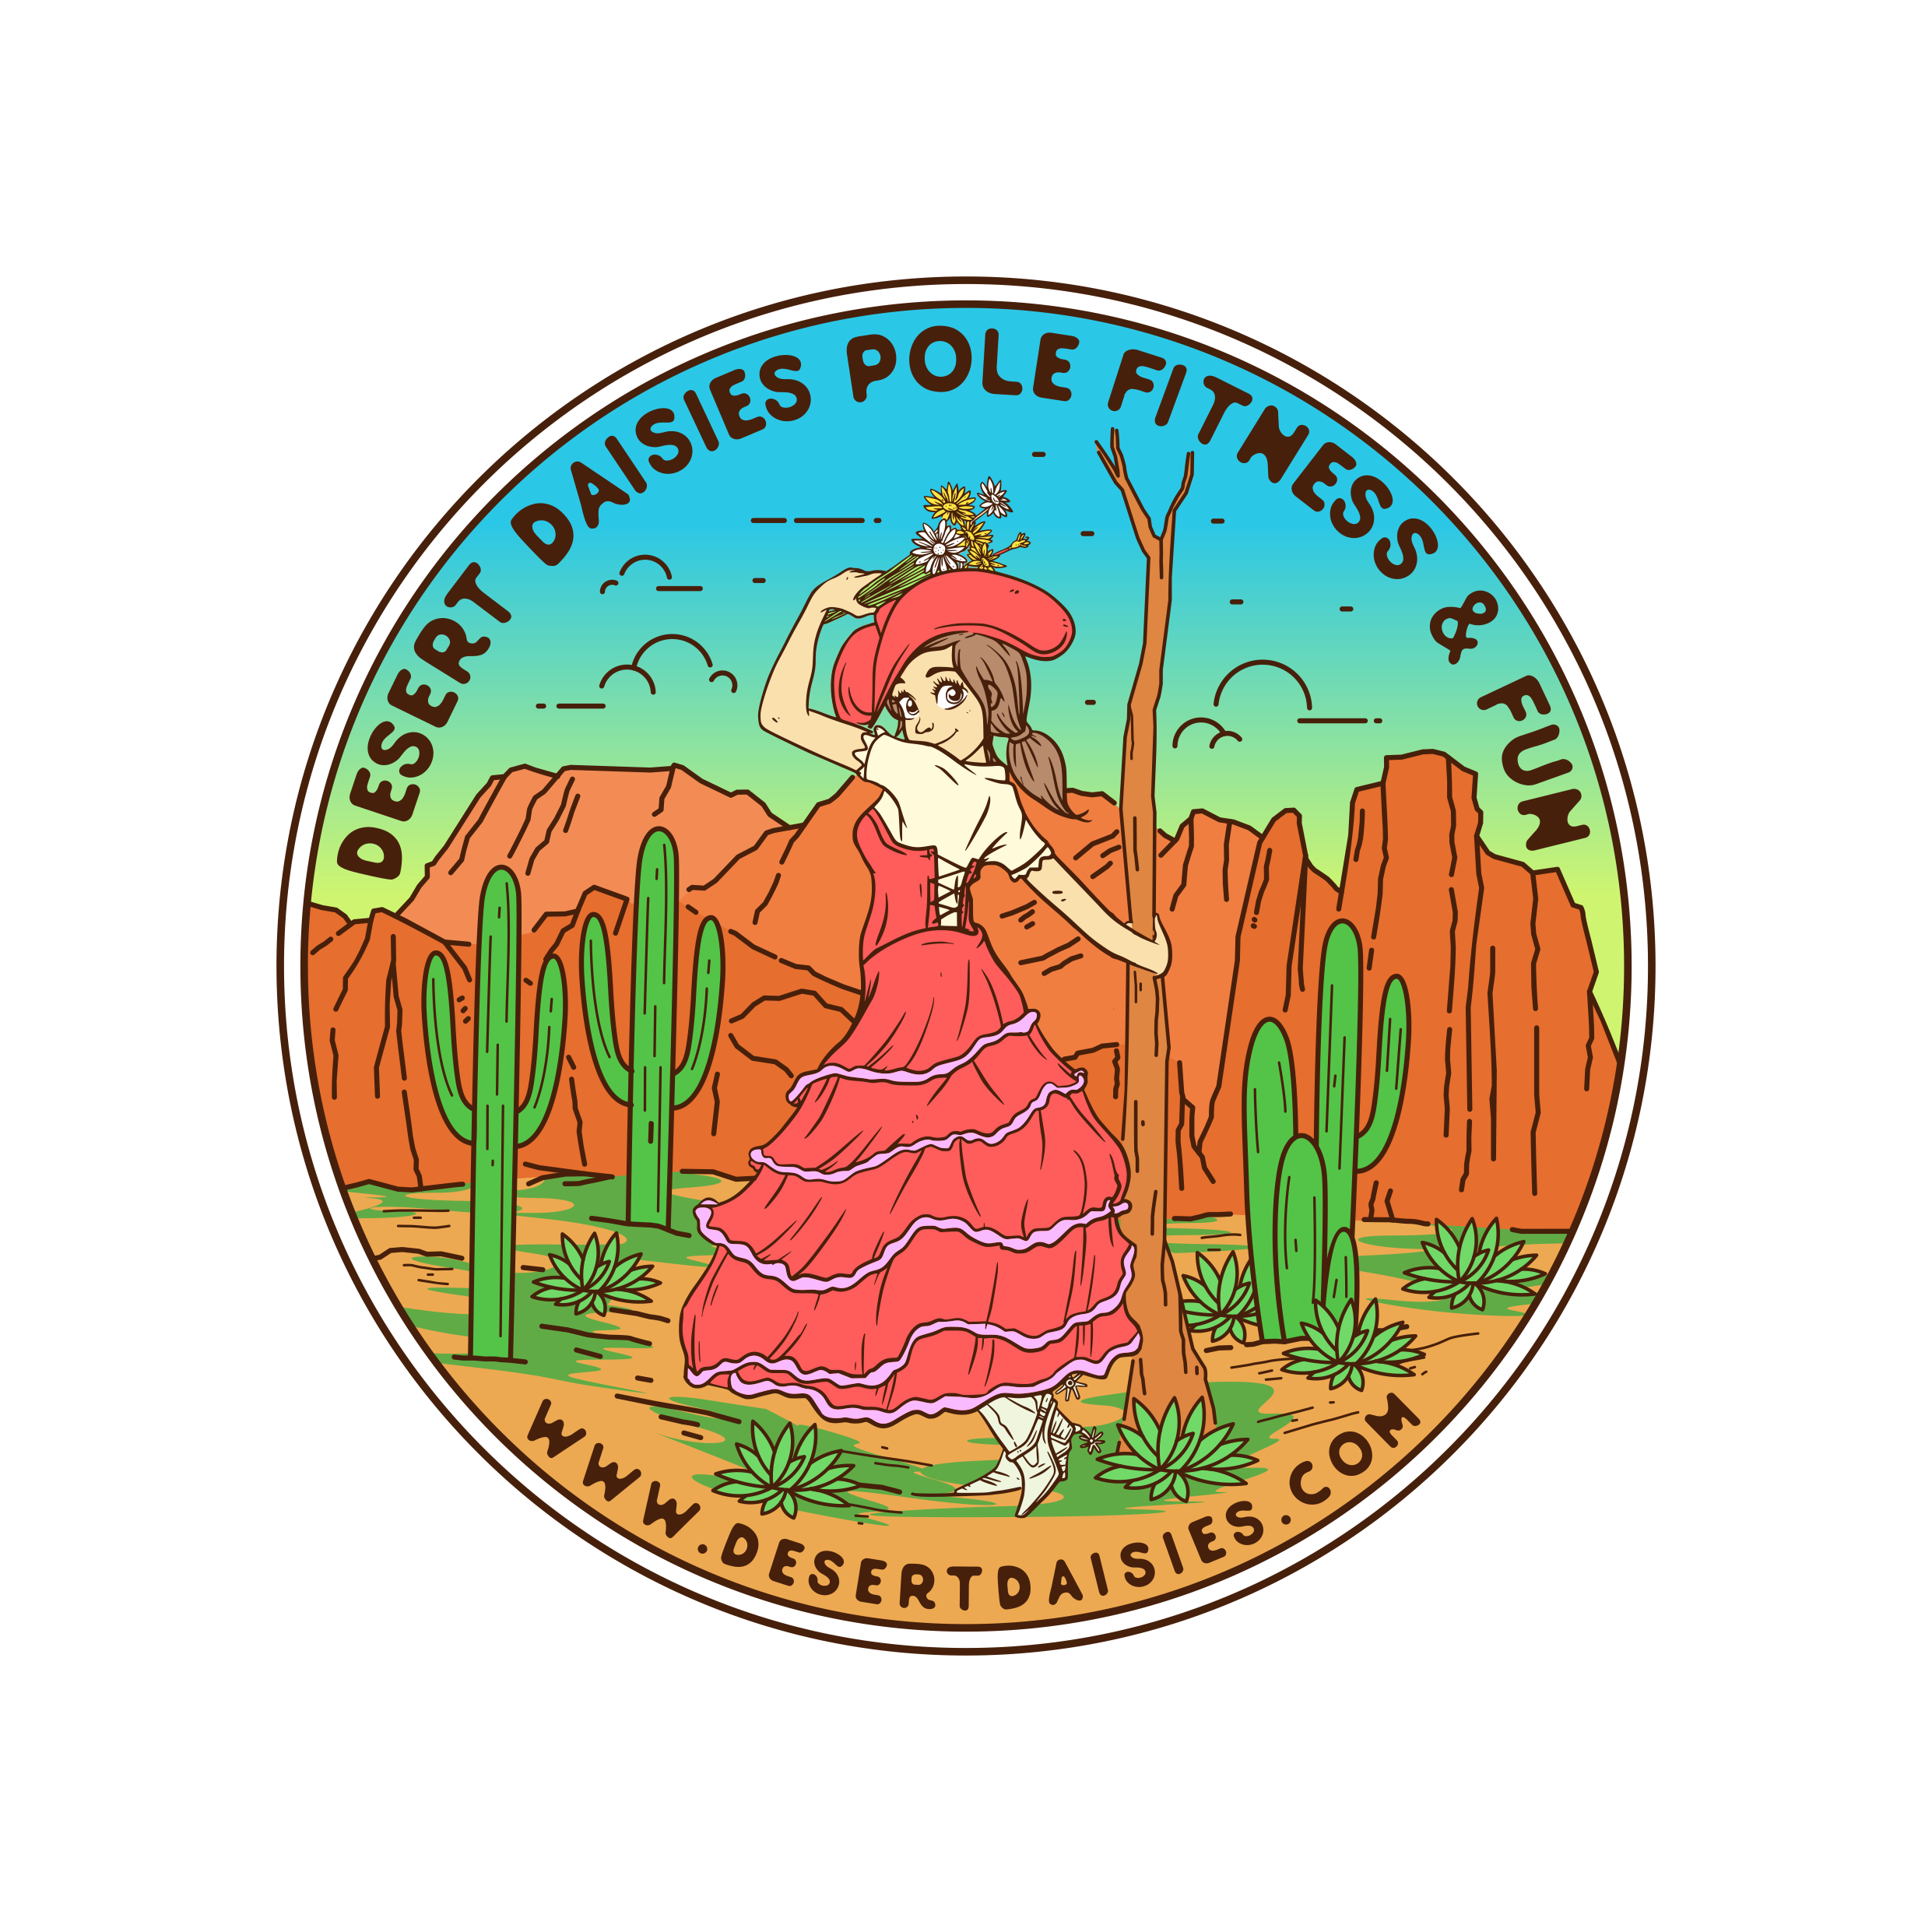 Desert Daisies Pole Fitness Classes in Camp Verde & Online